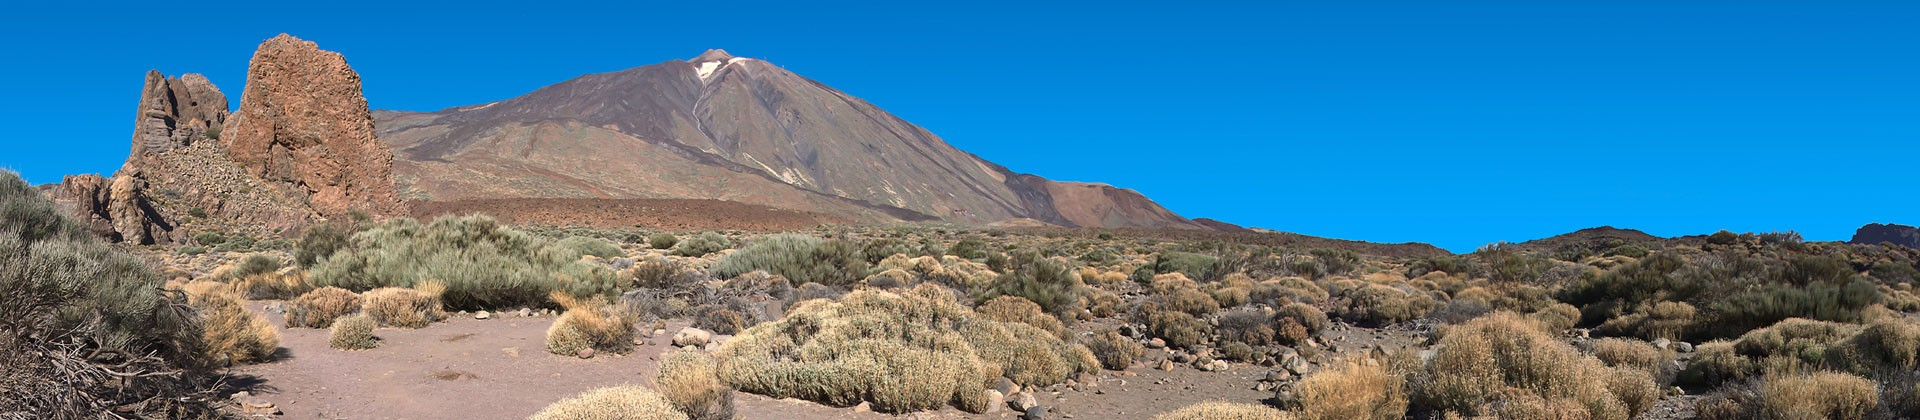 https://www.goodmorningtenerife.com/wp-content/uploads/2014/08/01_slide_teide_GM_Tenerife-1920x420.jpg